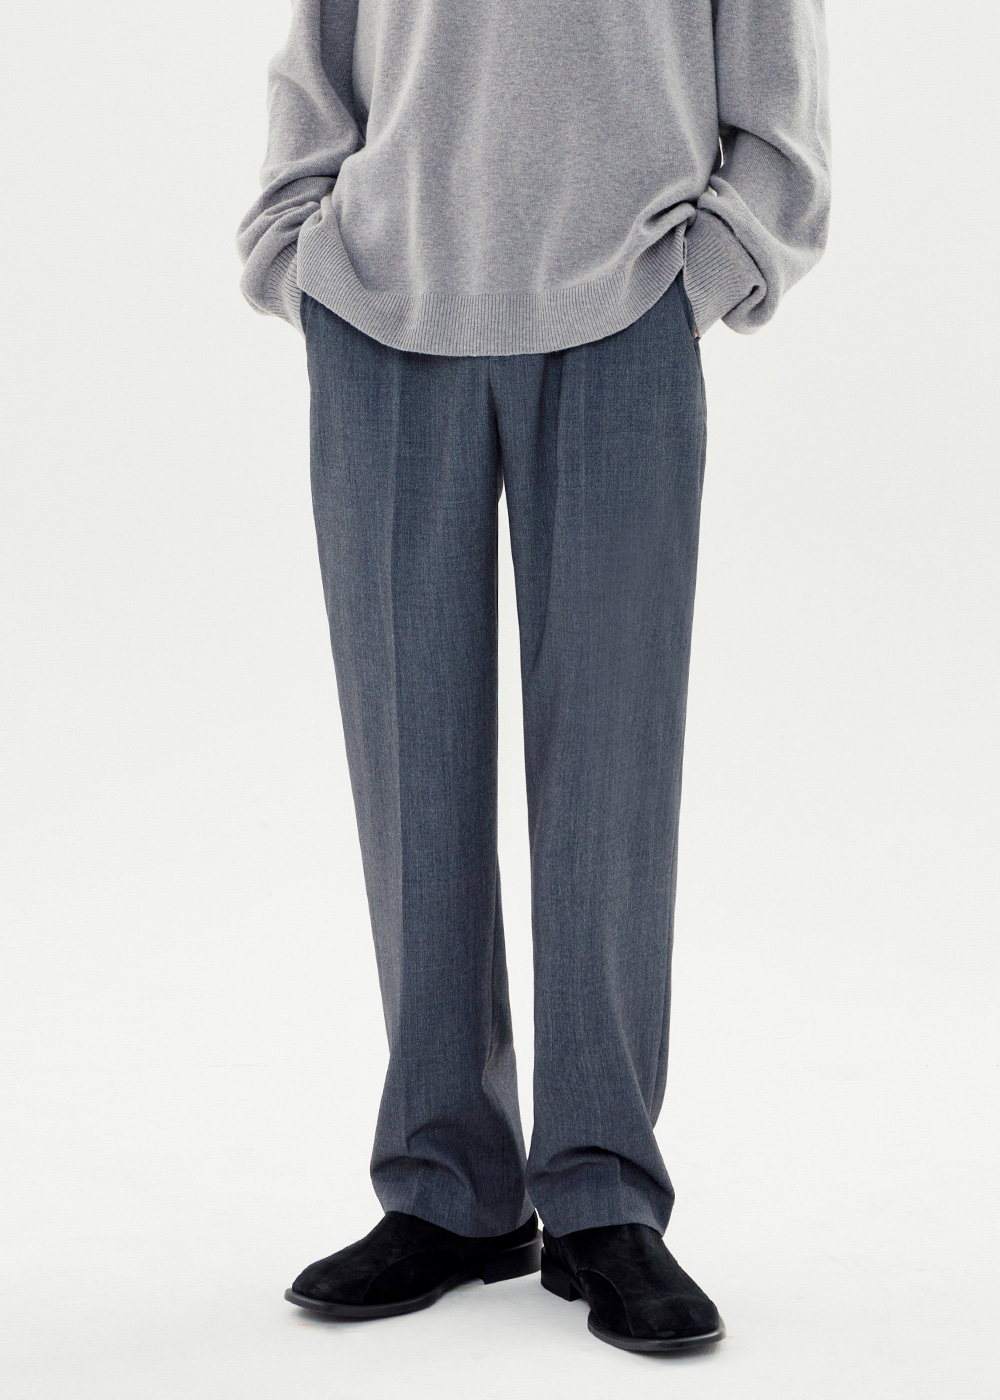 WIDE SLACKS [GRAY]